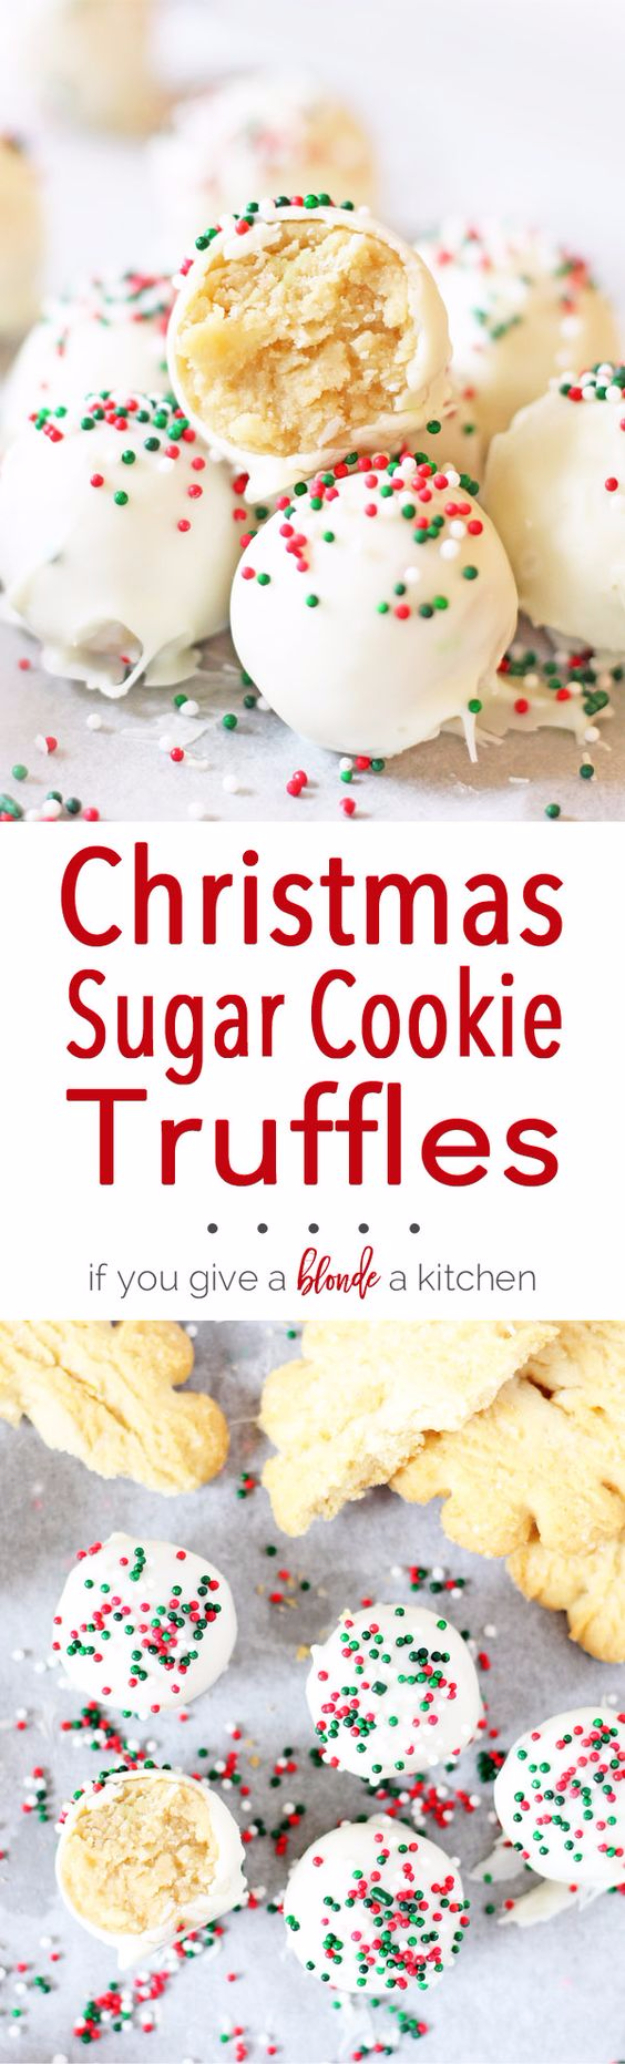 Best Recipes for Christmas Cookies- Christmas Sugar Cookie Truffles - Easy Decorated Holiday Cookies - Candy Cookie Recipes Ideas for Kids - Traditional Favorites and Gluten Free and Healthy Versions - Quick No Bake Cookies and Last Minute Desserts for the Holidays